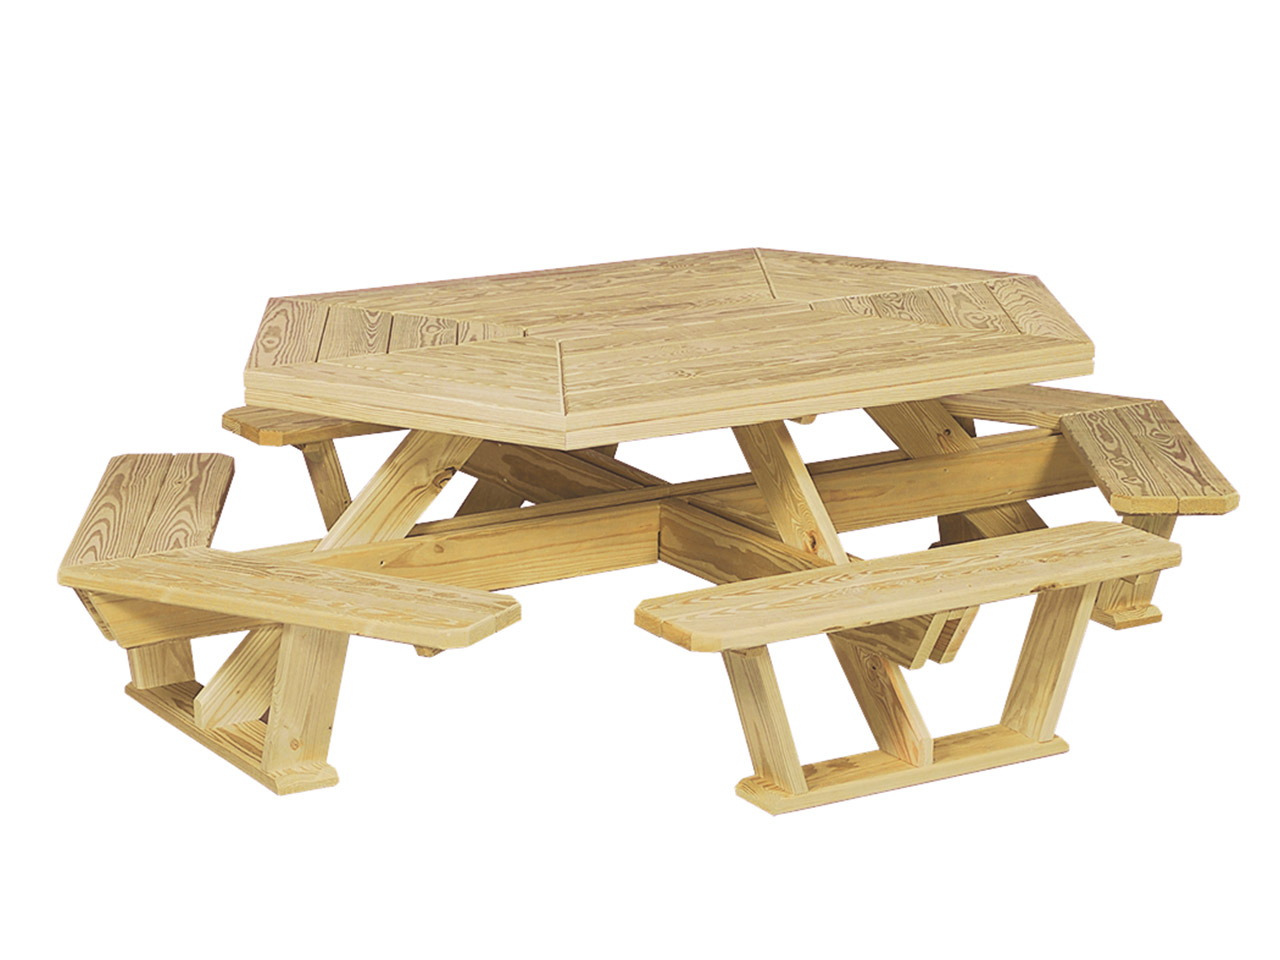 Outdoor wood furniture - hexagon table with benches